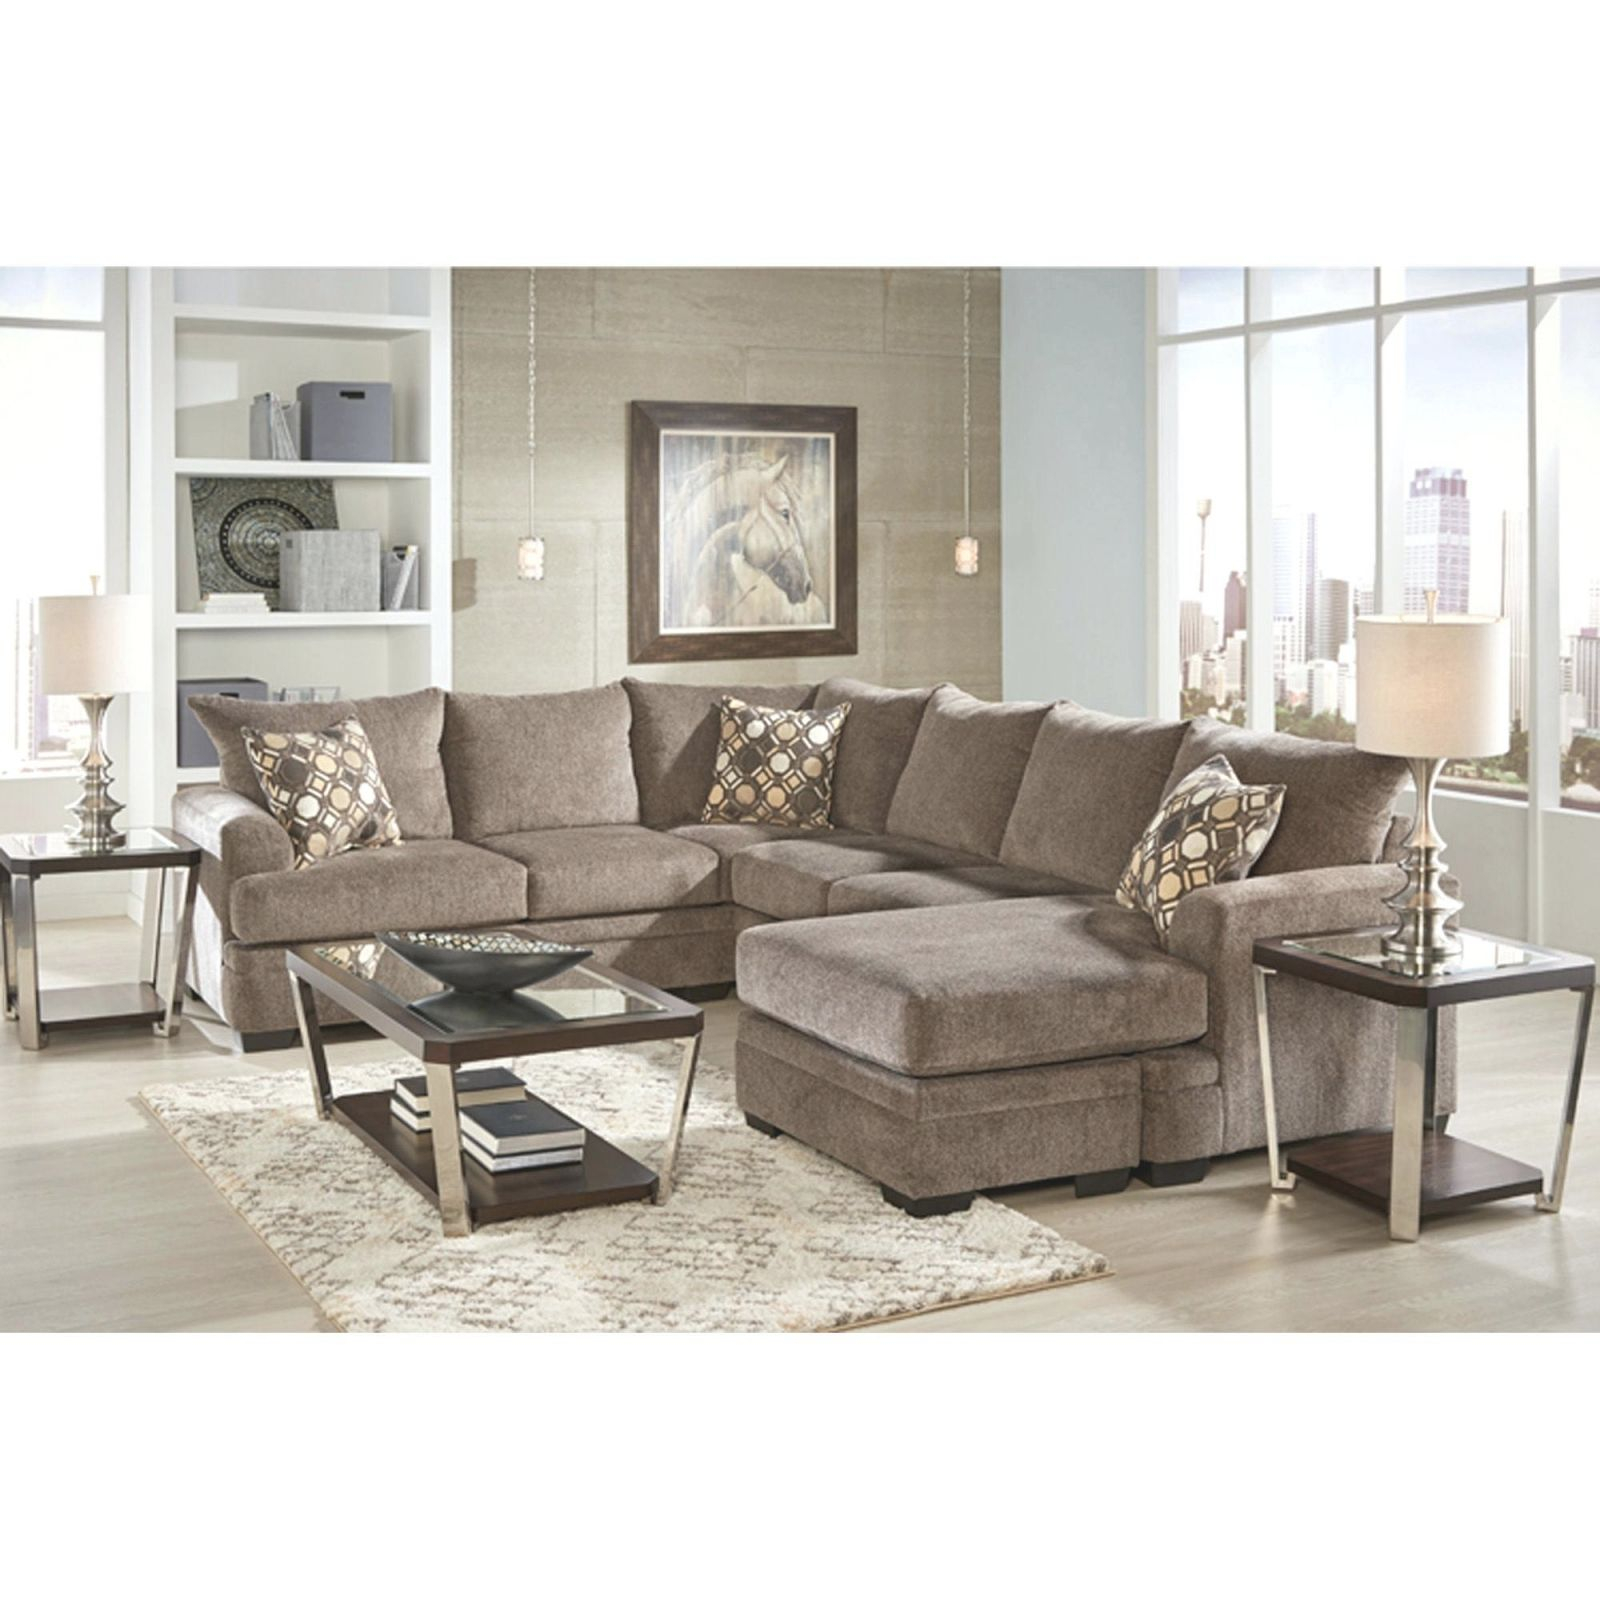 Cheap Living Room Furniture Sets – Bishopsownwrexham with regard to Unique Living Room Furniture Sets For Sale